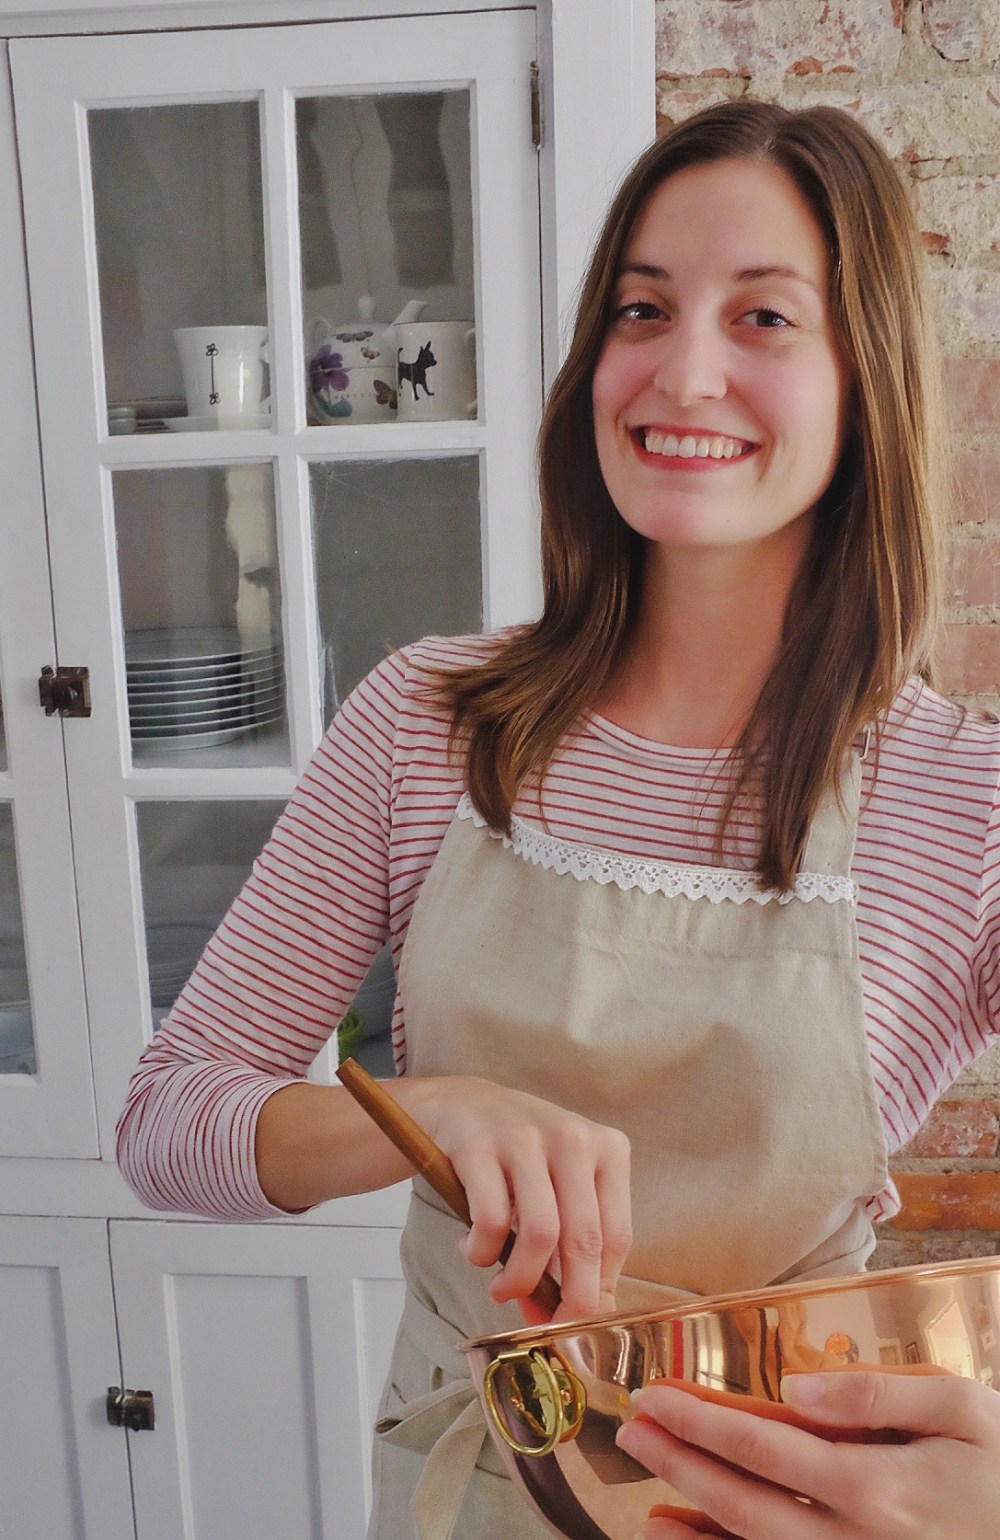 healthy eating matters q + a with izzycooksinsta